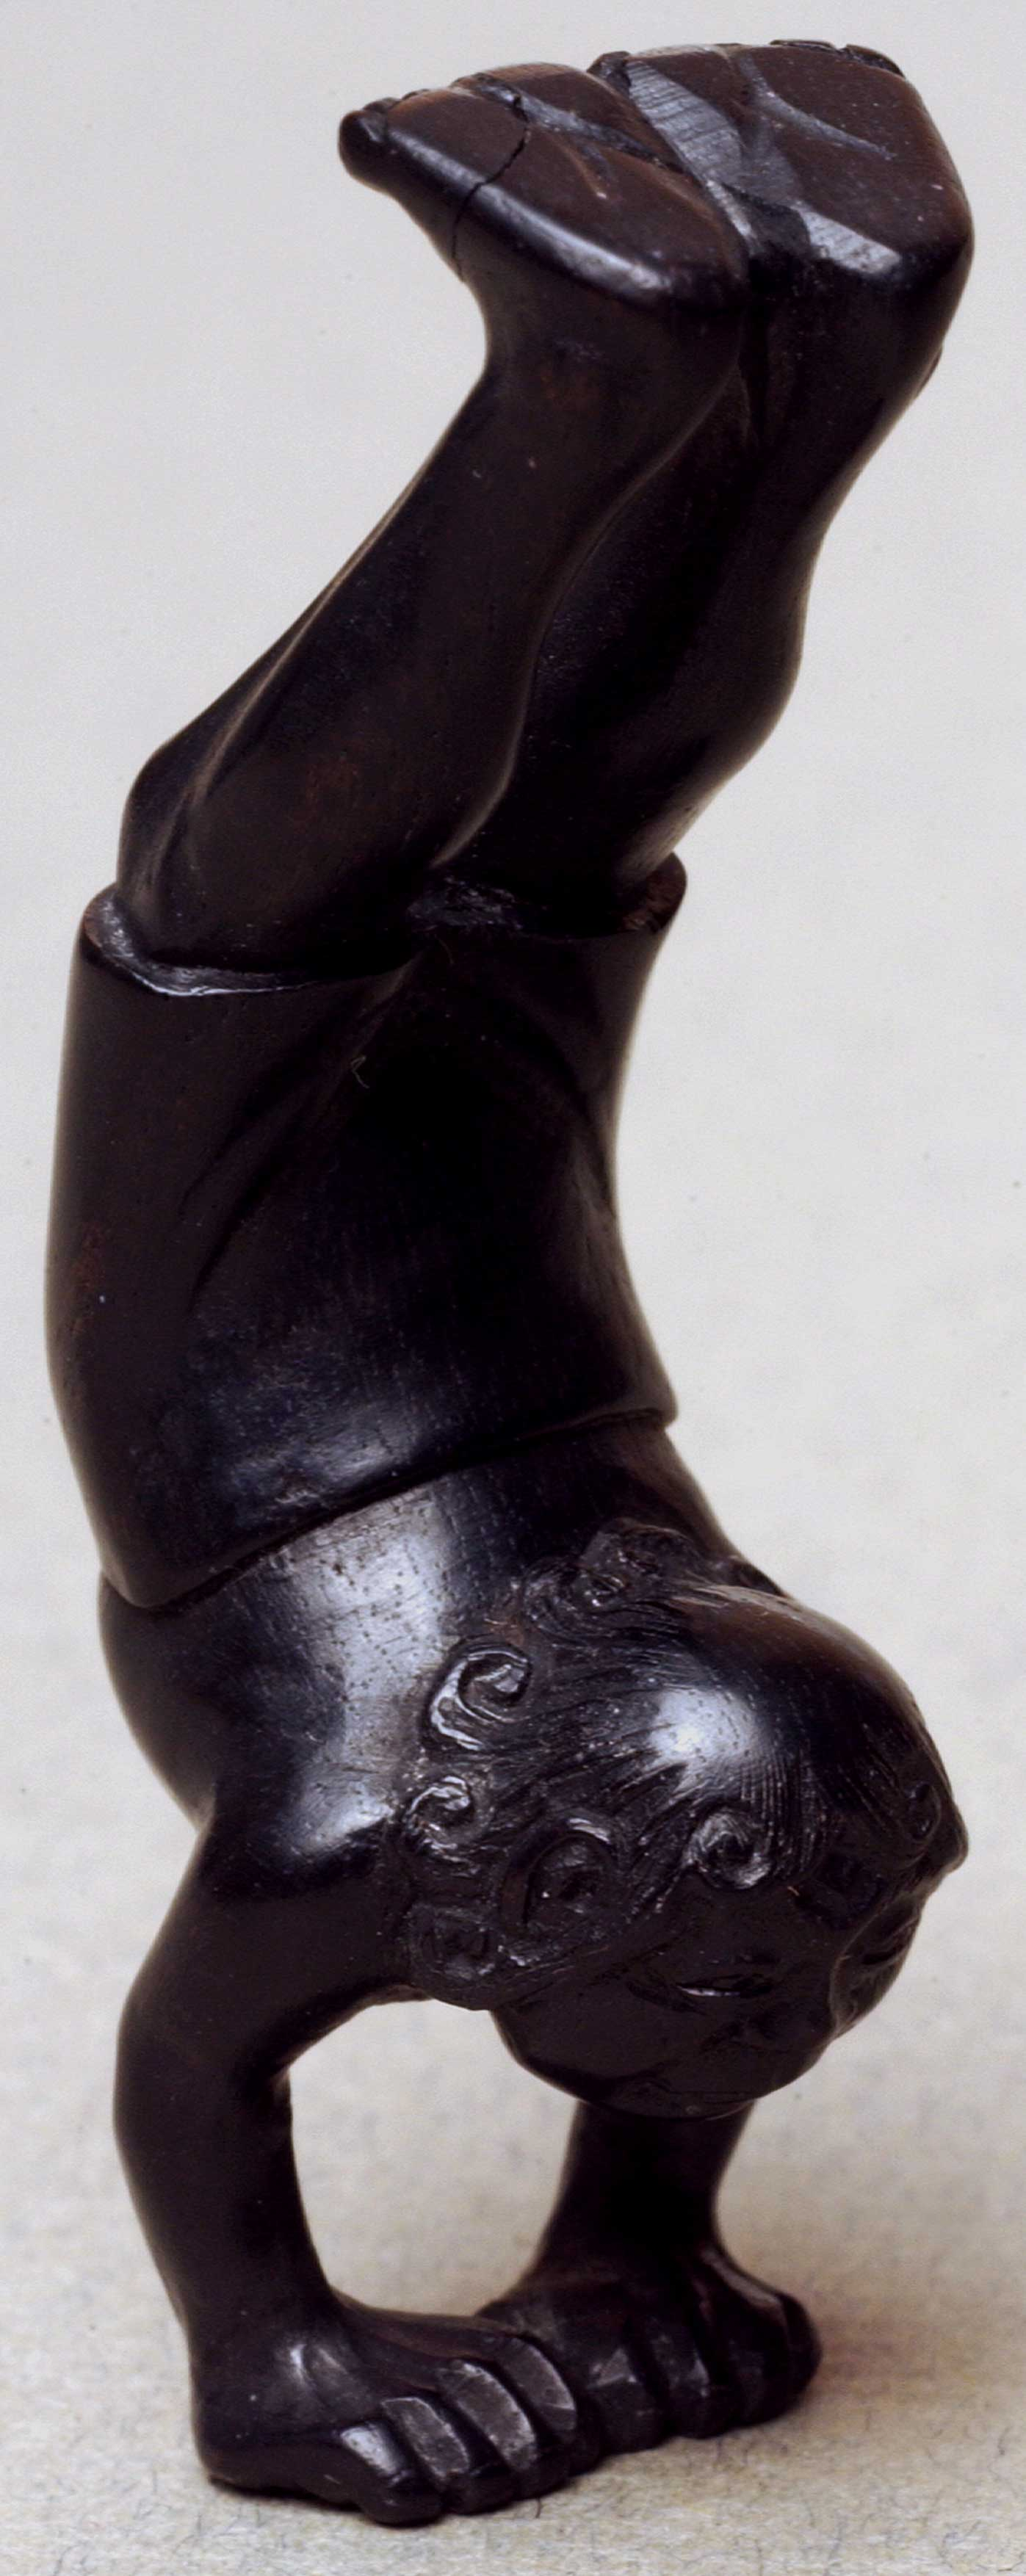 Netsuke depicting an acrobat